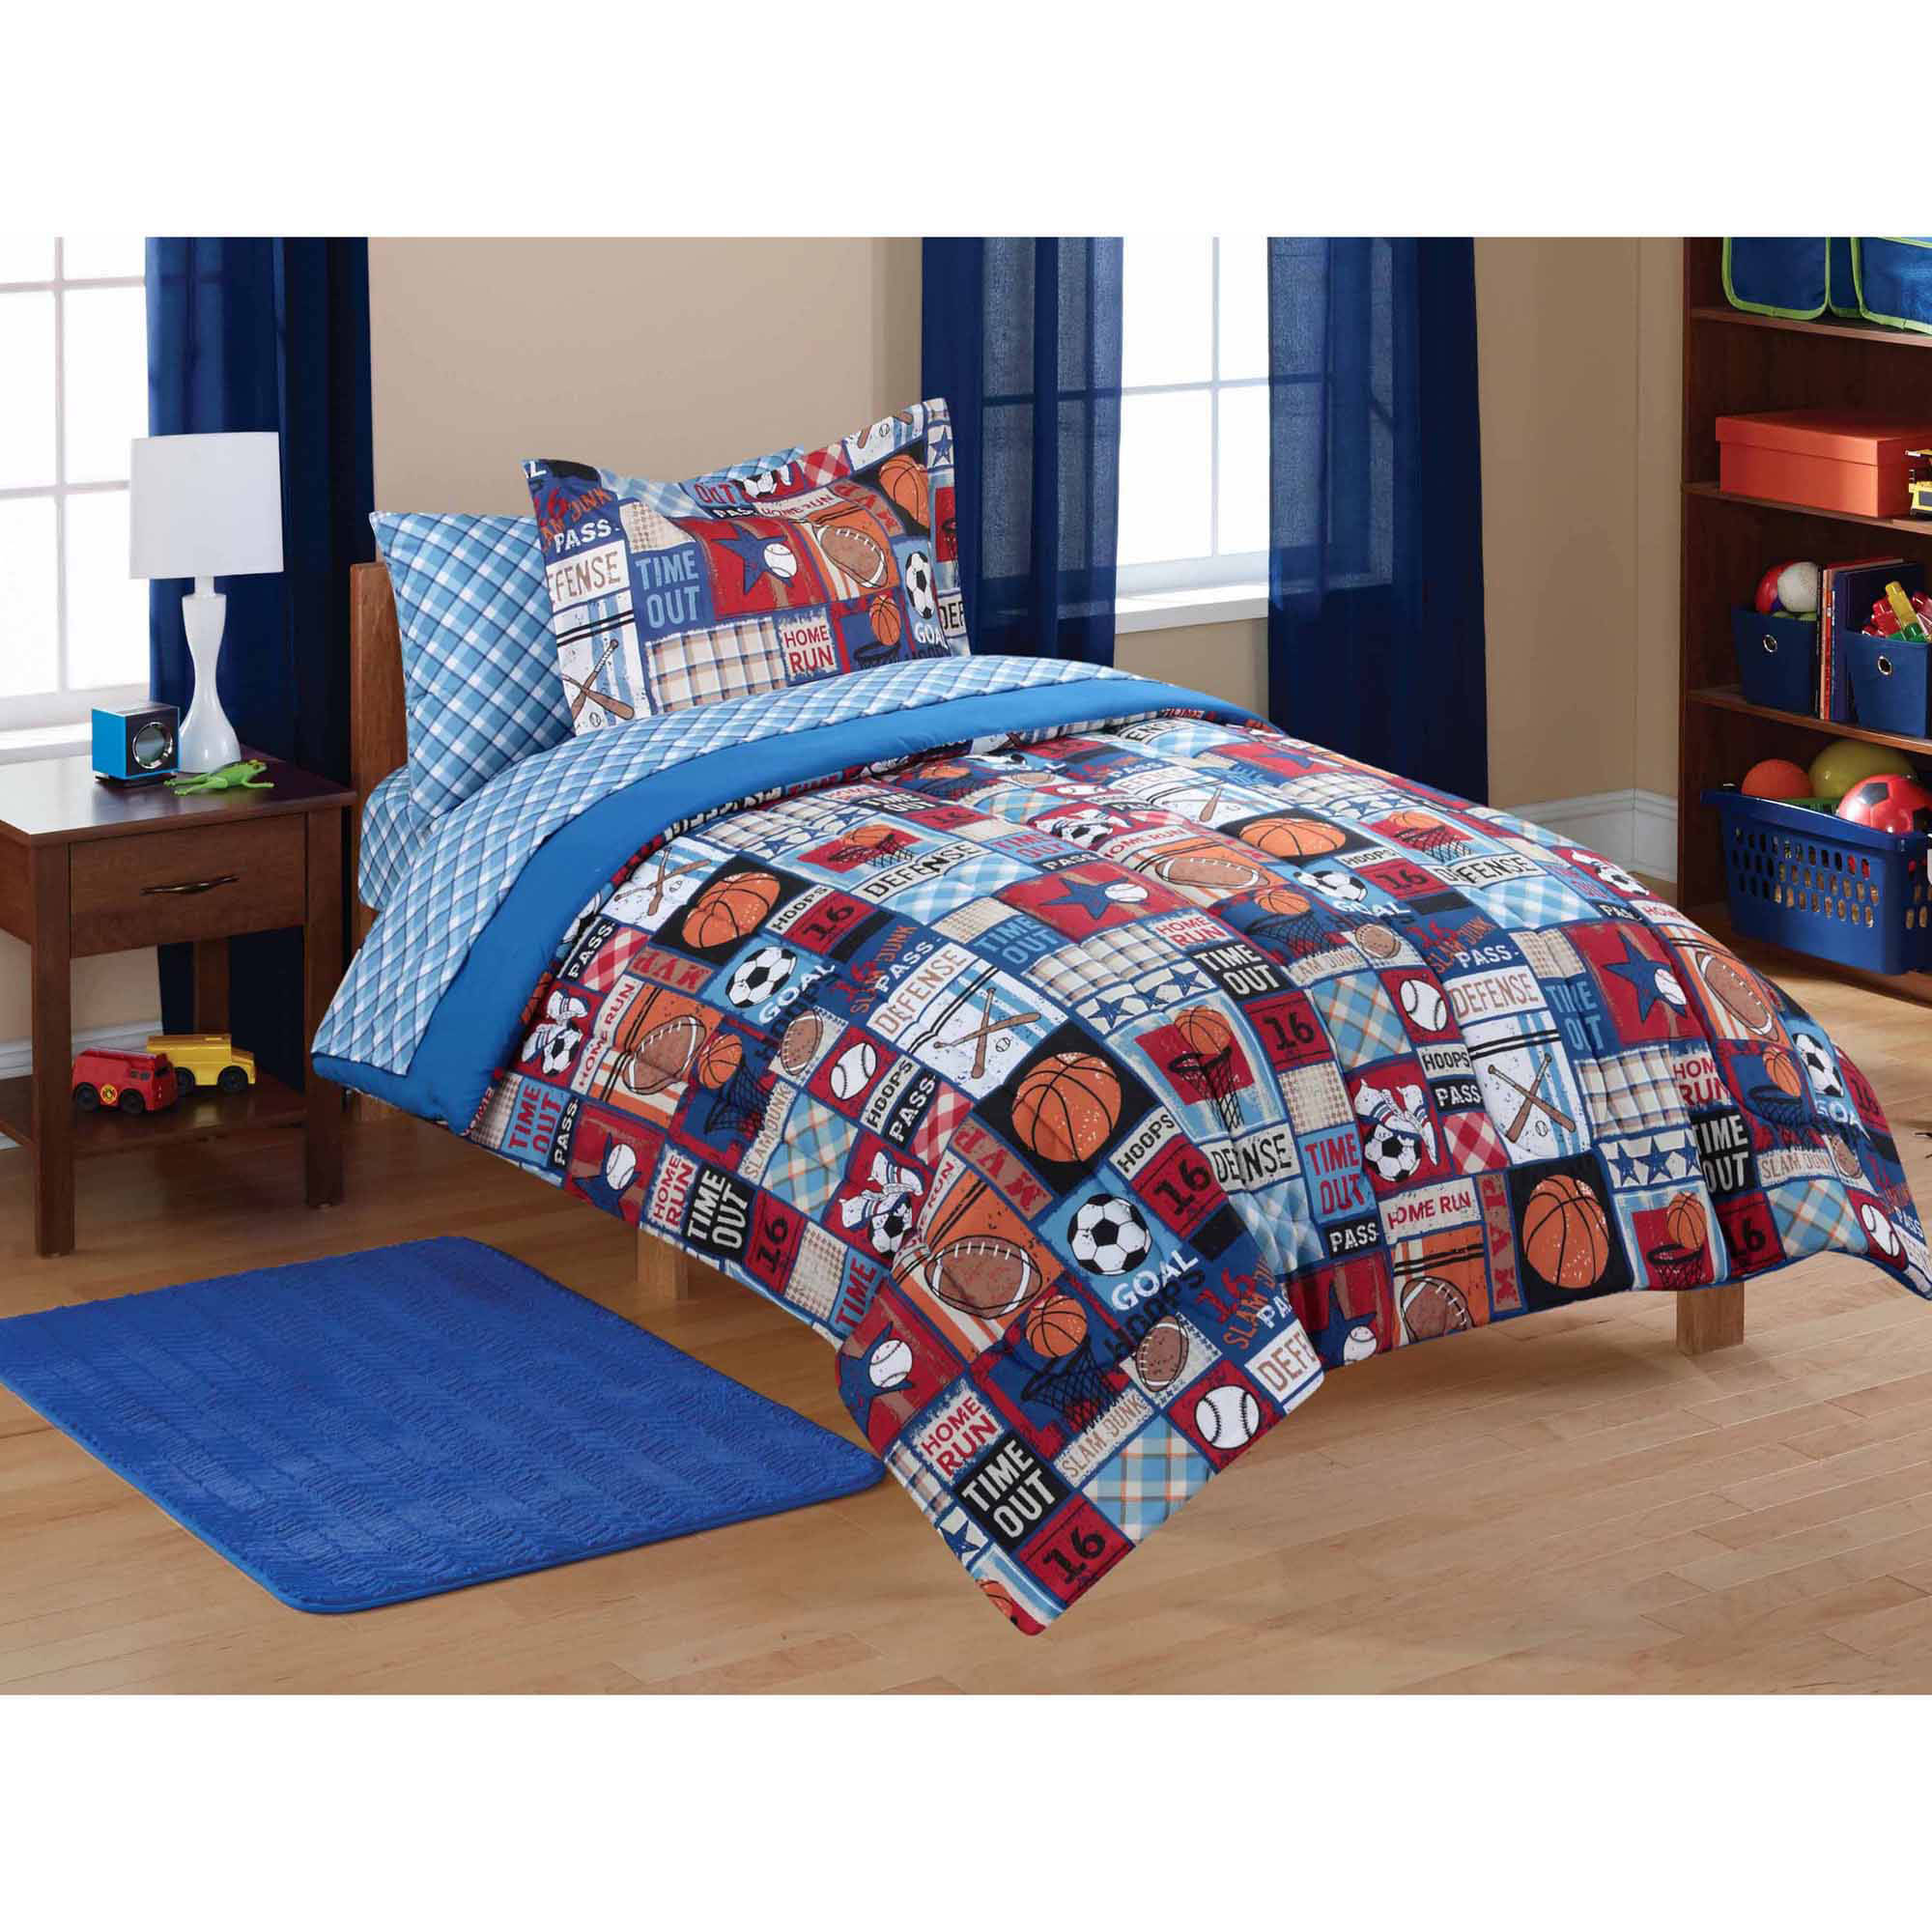 Bedding sets for teenage girls walmart - Mainstays Kids Sports Patch Coordinated Bed In A Bag